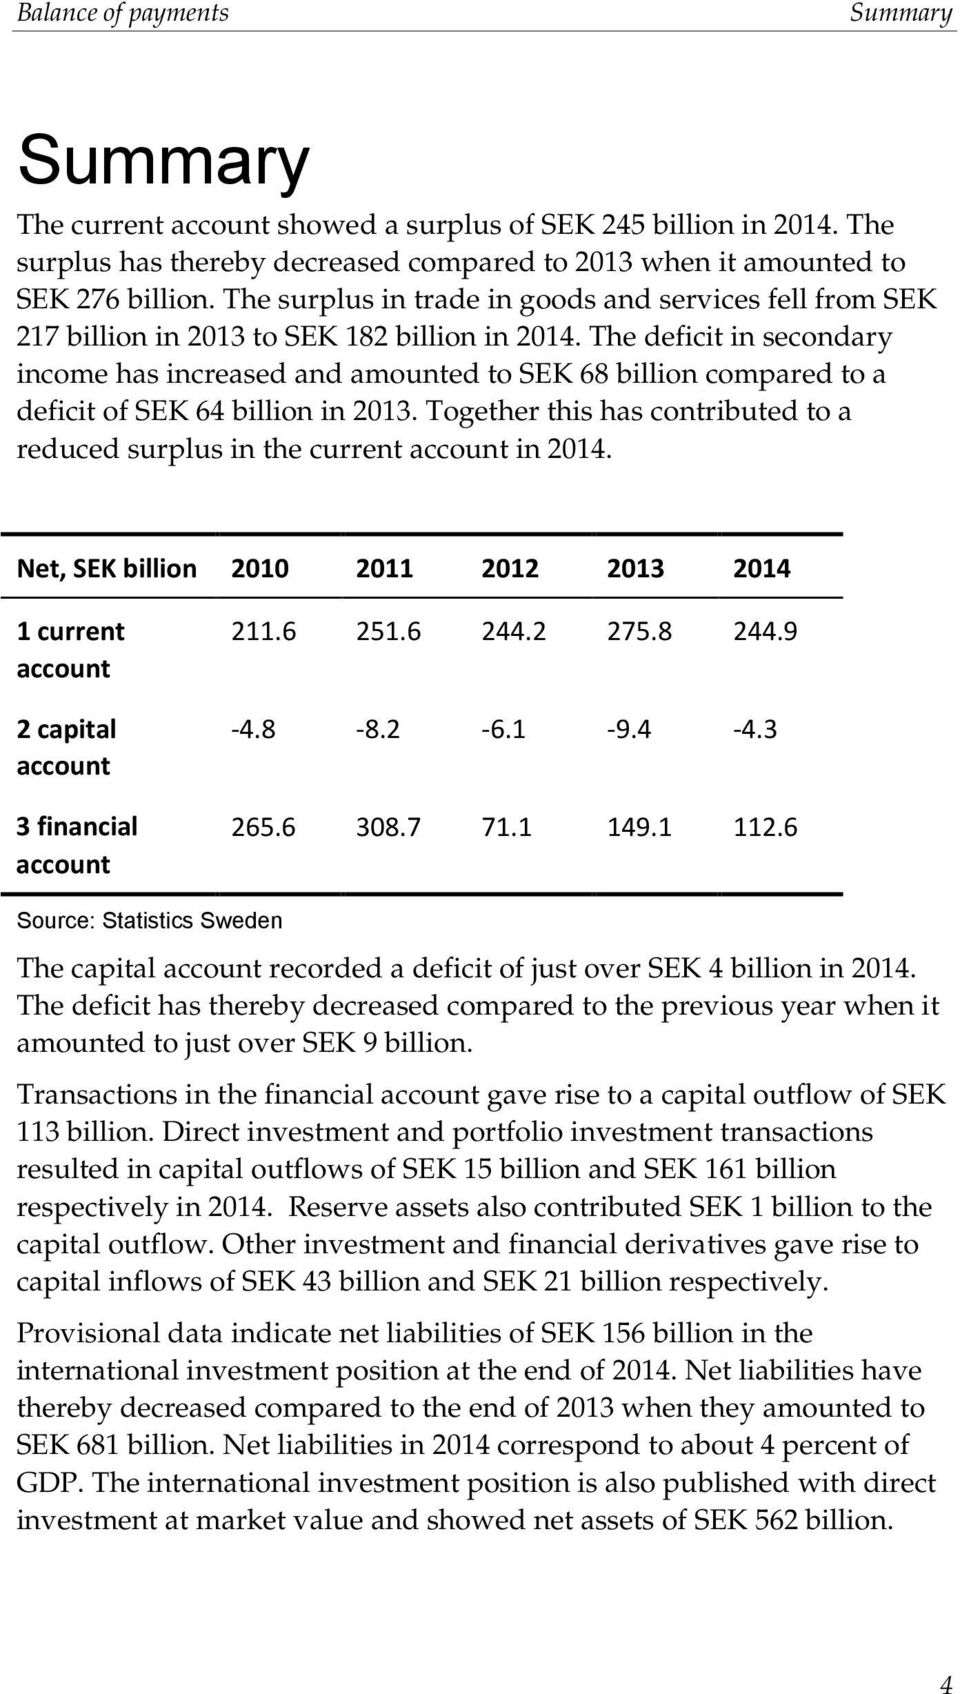 The defici in secondary income has increased and amouned o SEK 68 billion compared o a defici of SEK 64 billion in 2013. Togeher his has conribued o a reduced surplus in he curren accoun in 2014.